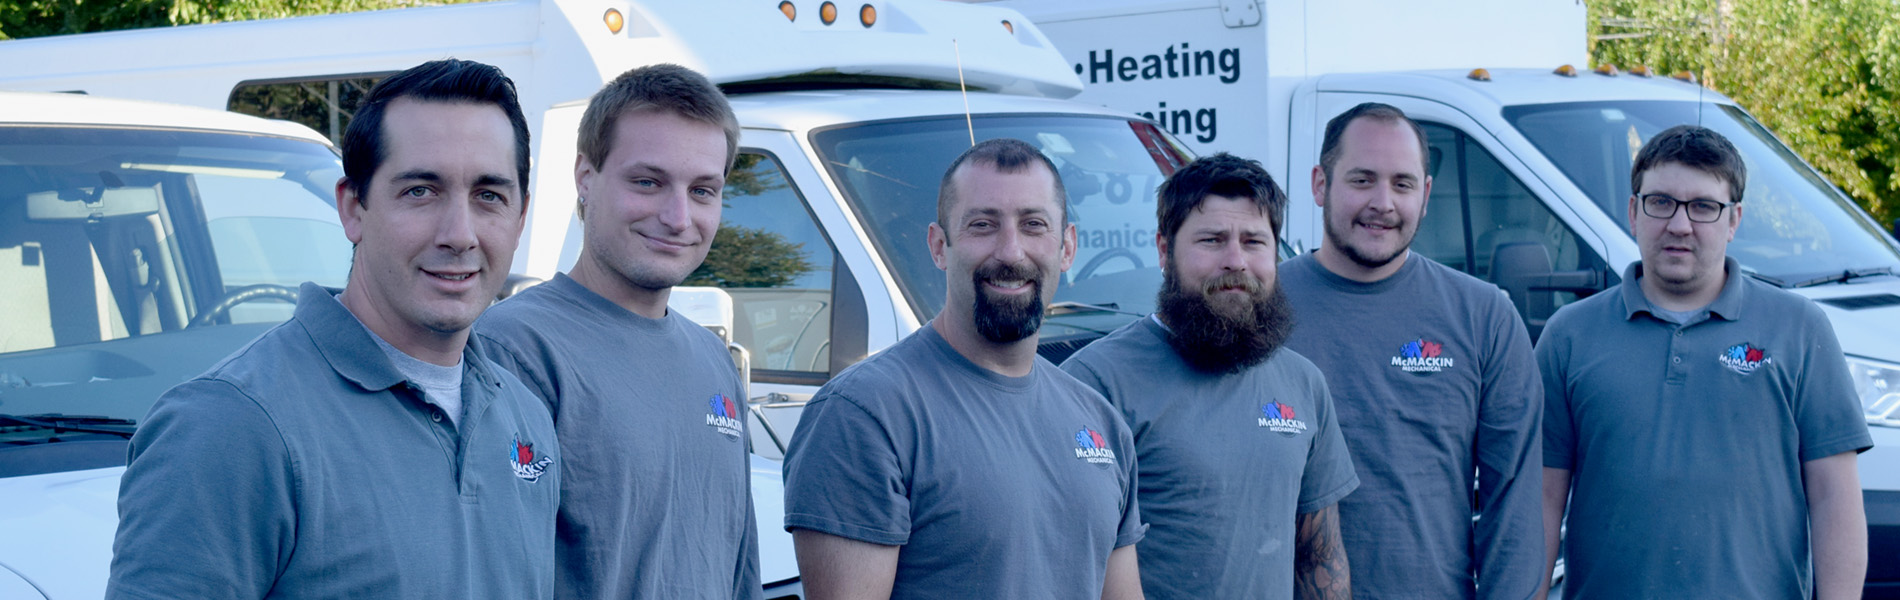 McMackin Mechanical Home, Bucks County HVAC, Heating, Air Conditioning installation and repairs